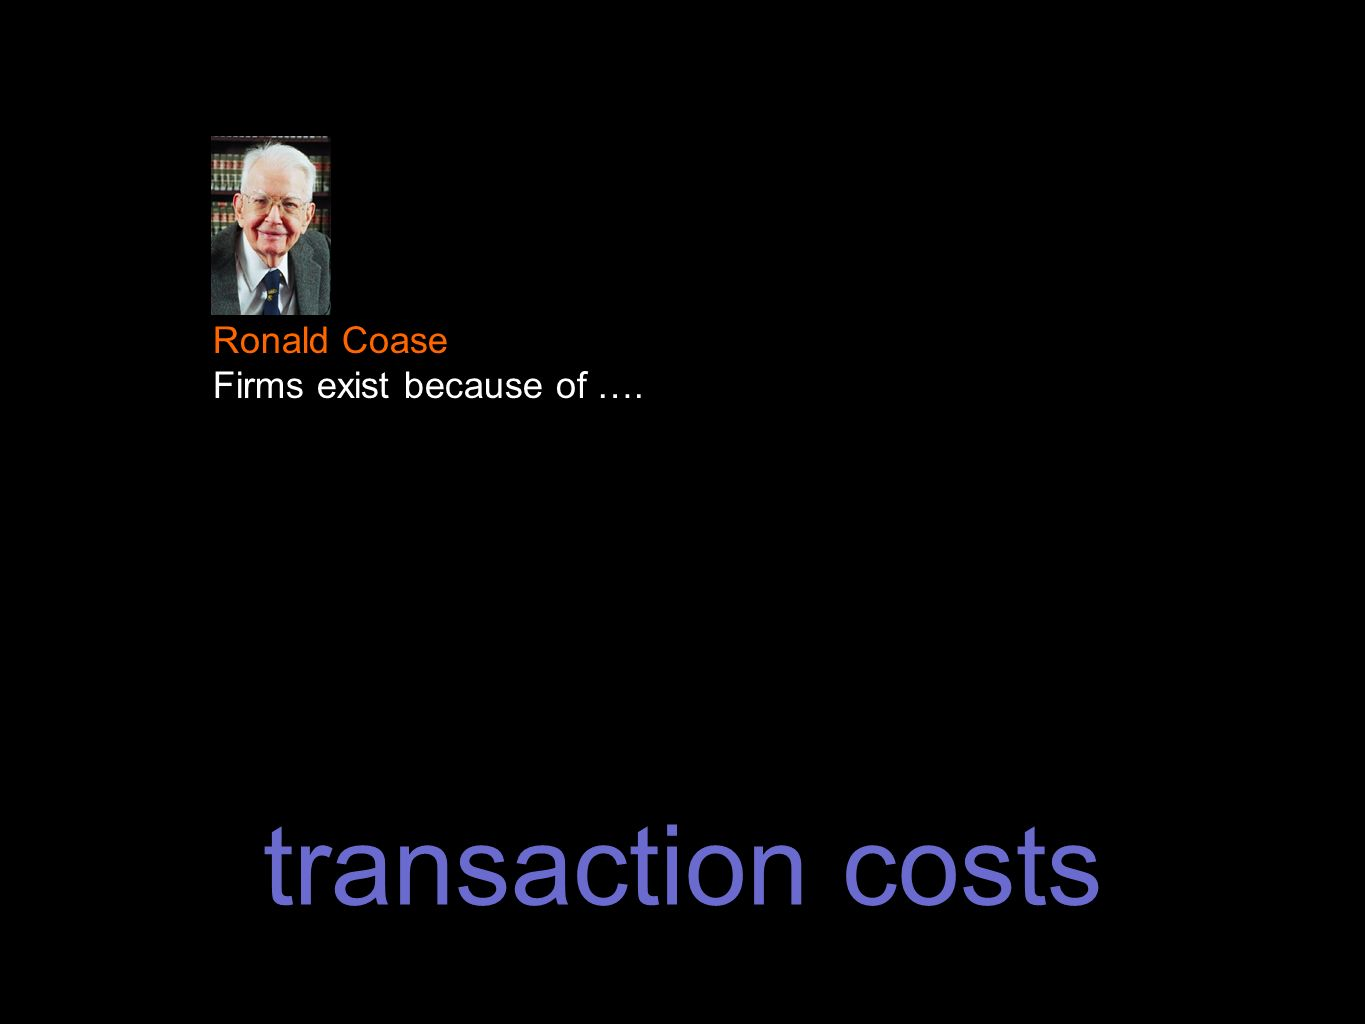 transaction costs Ronald Coase Firms exist because of ….